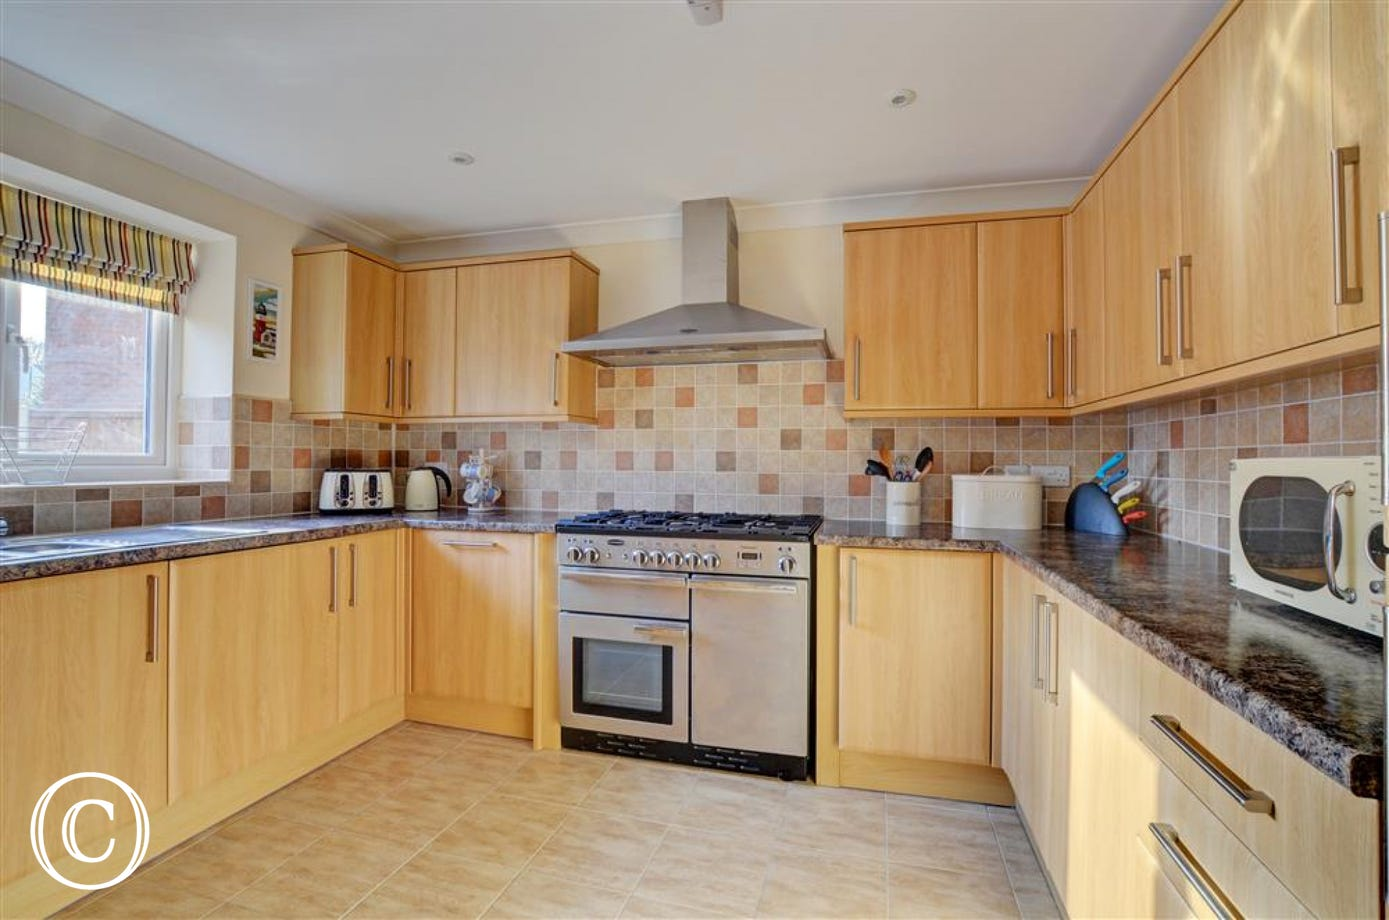 Lovely modern kitchen equipped with everything you need for your self catering break